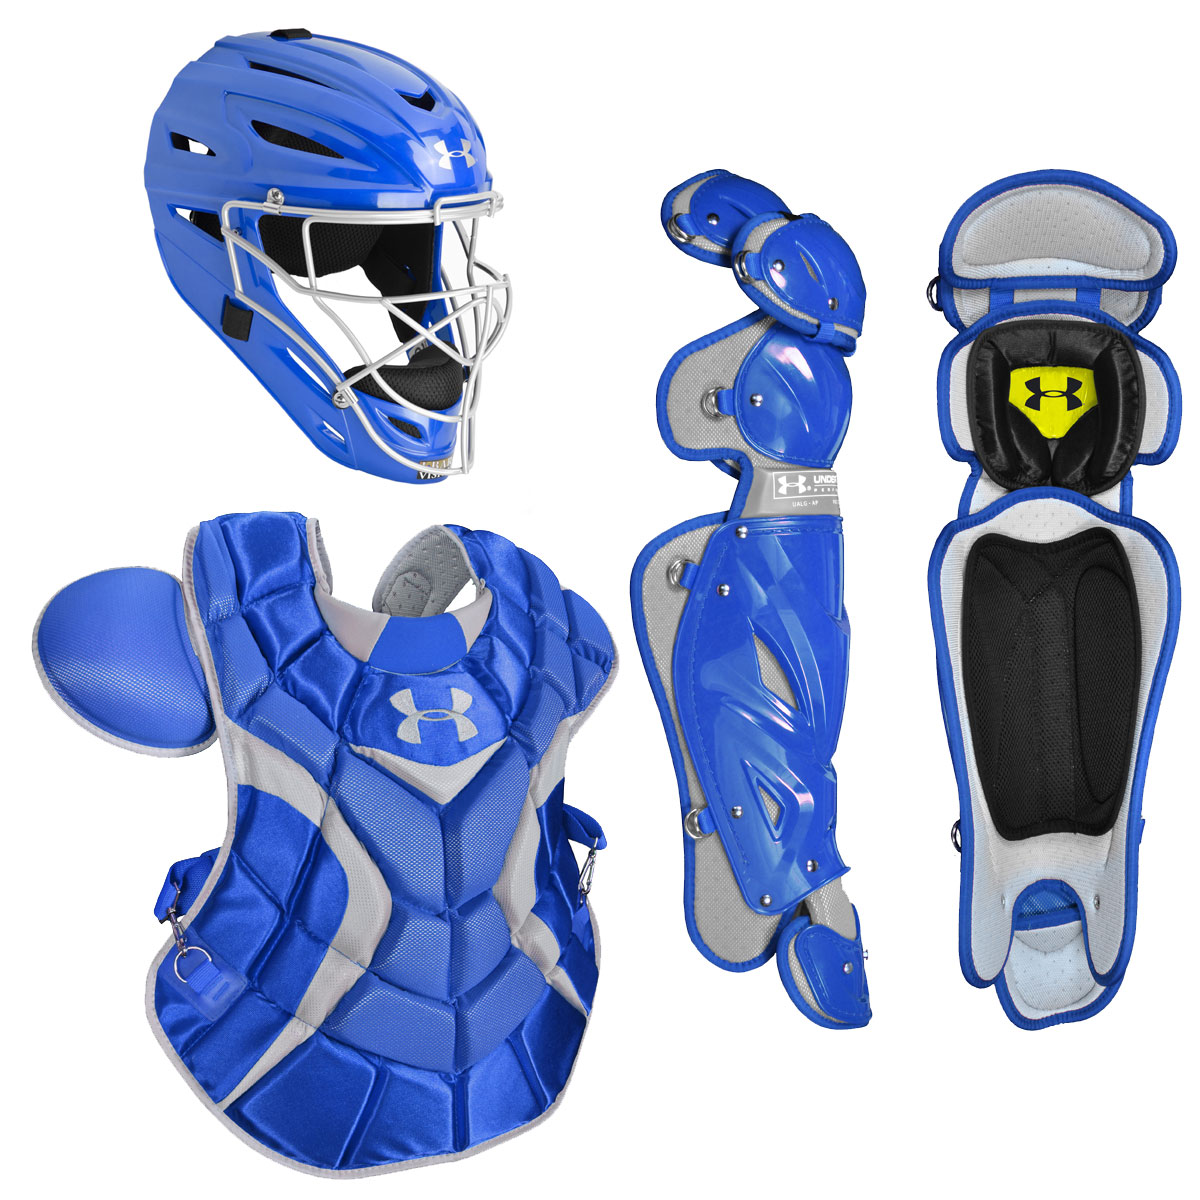 Under Armour Professional Series Youth Baseball Catcher's Set by